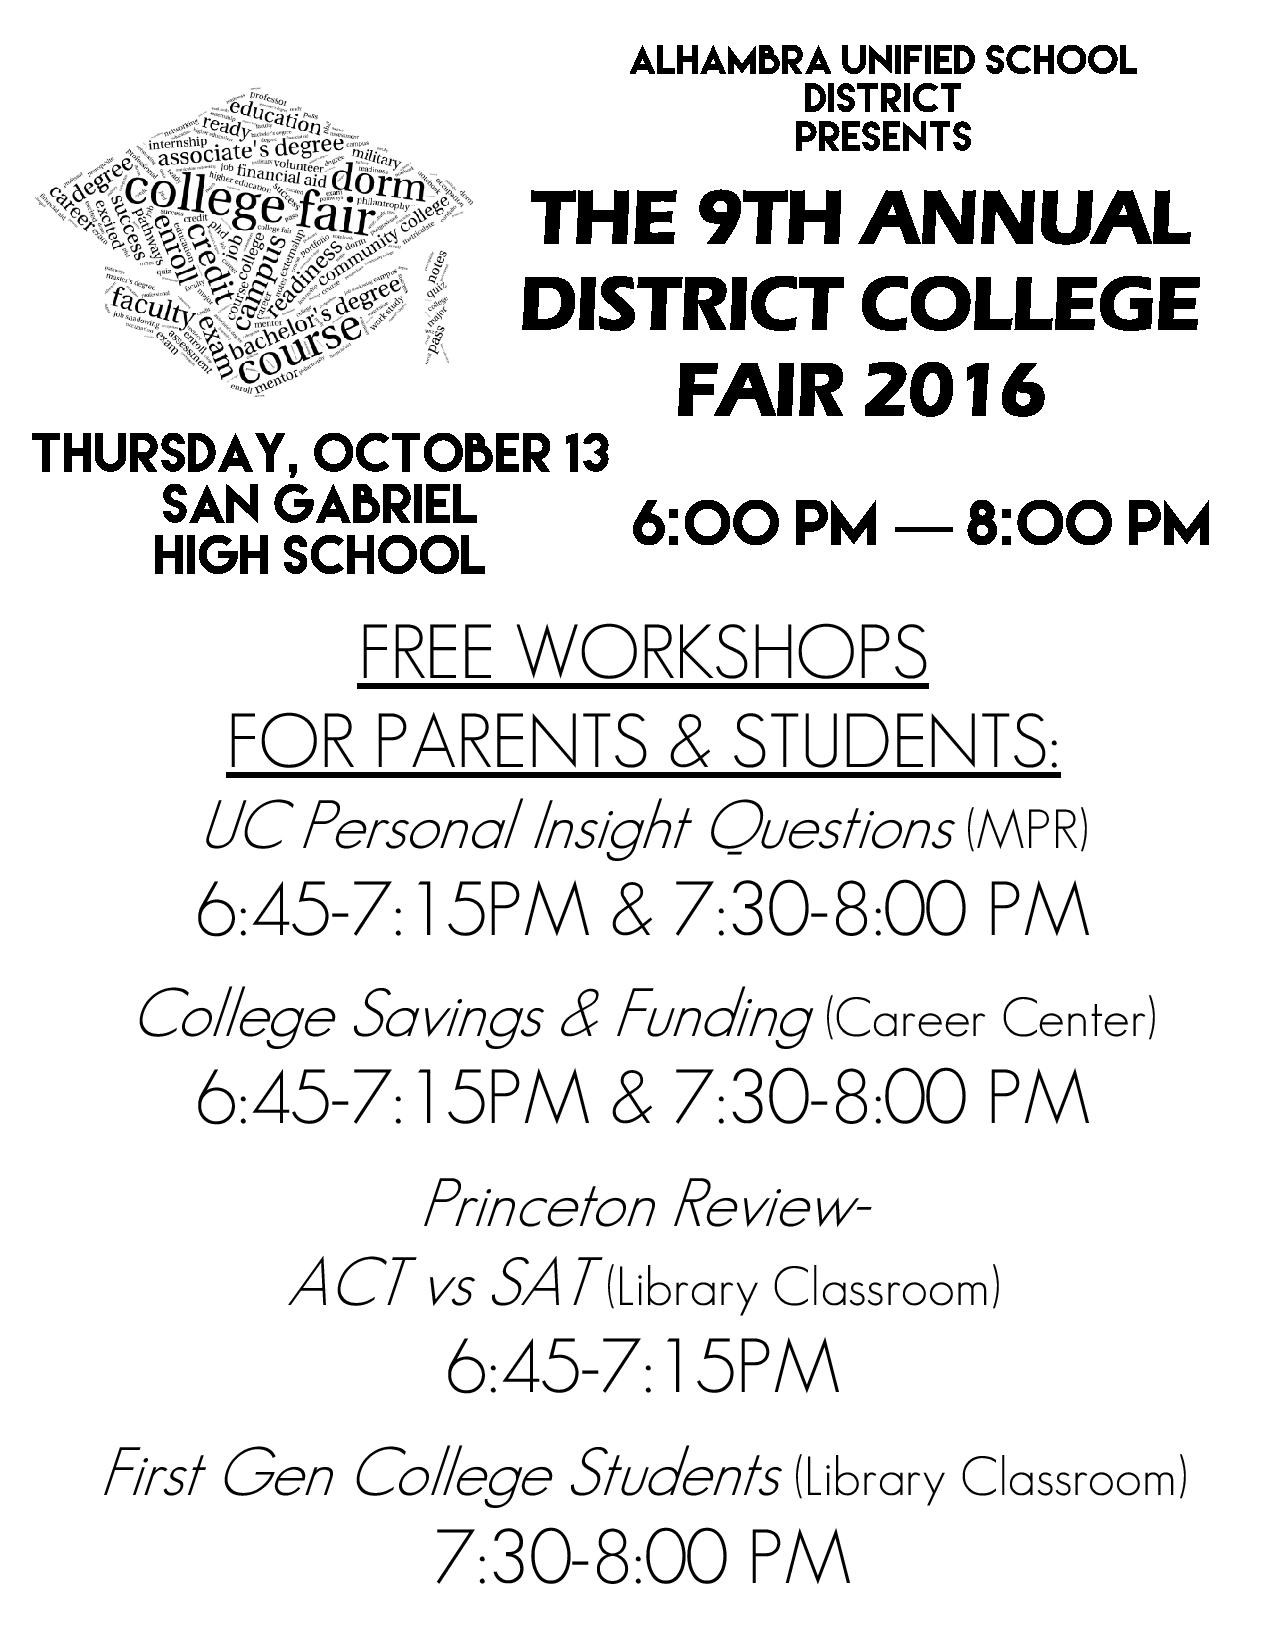 The 9th Anual District College Fair 2016 -Free Workshops Flyer